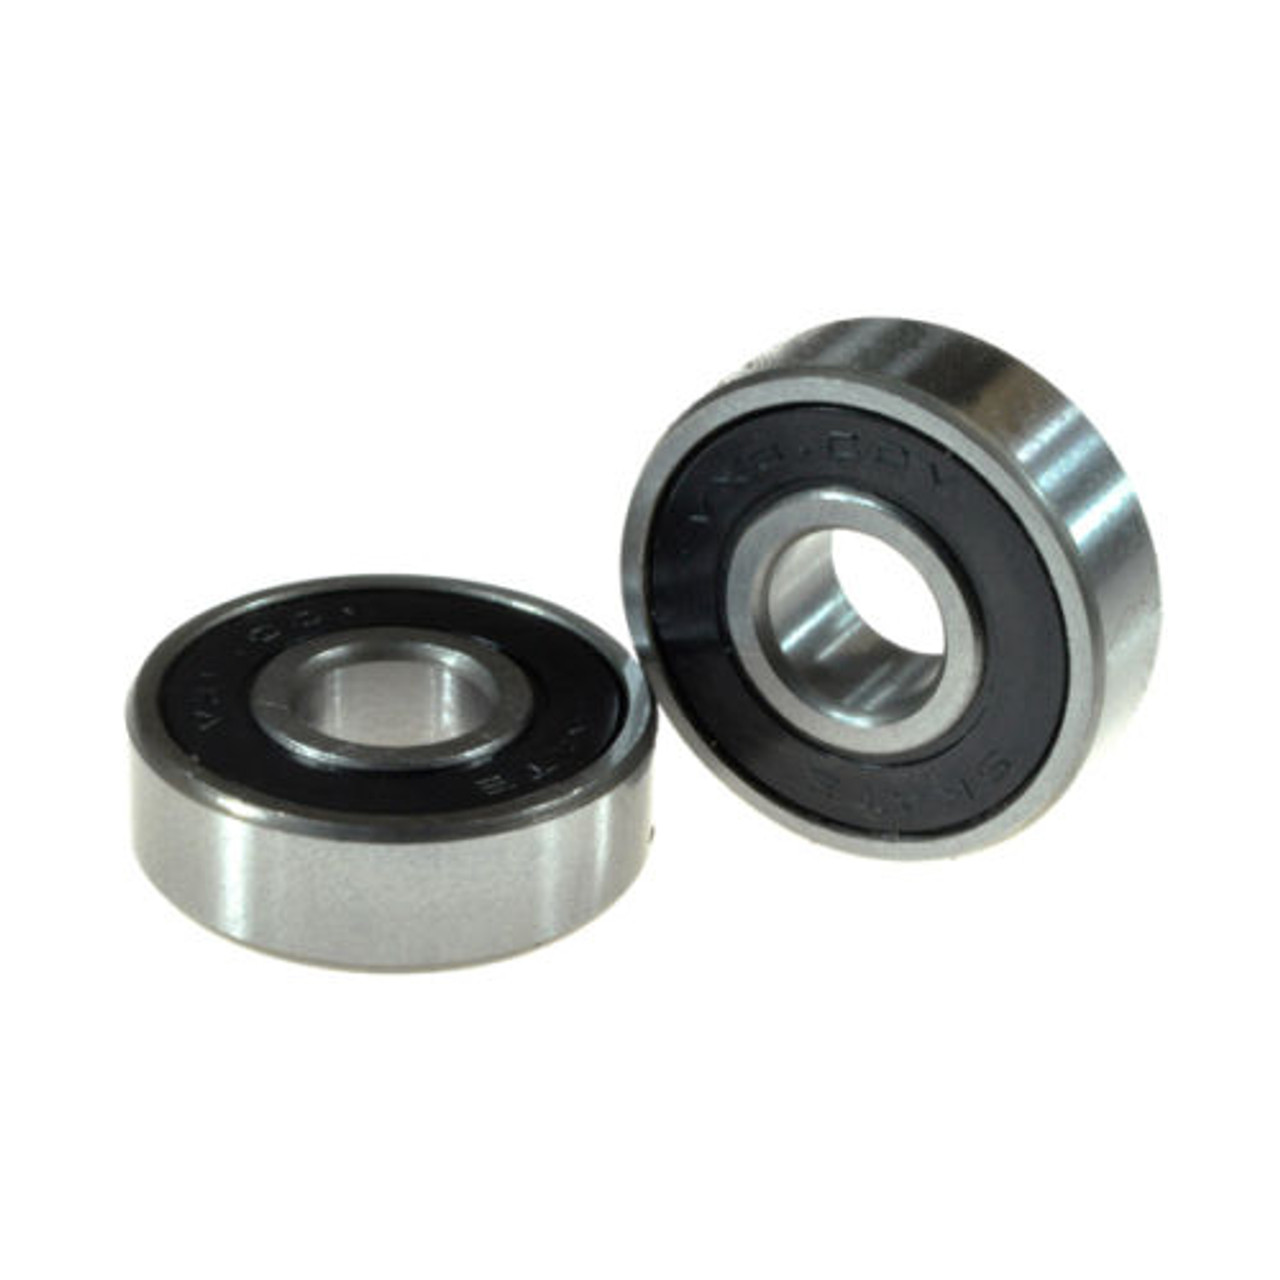 Wheel Bearings for 6.5 Wheels comes Quantity 2